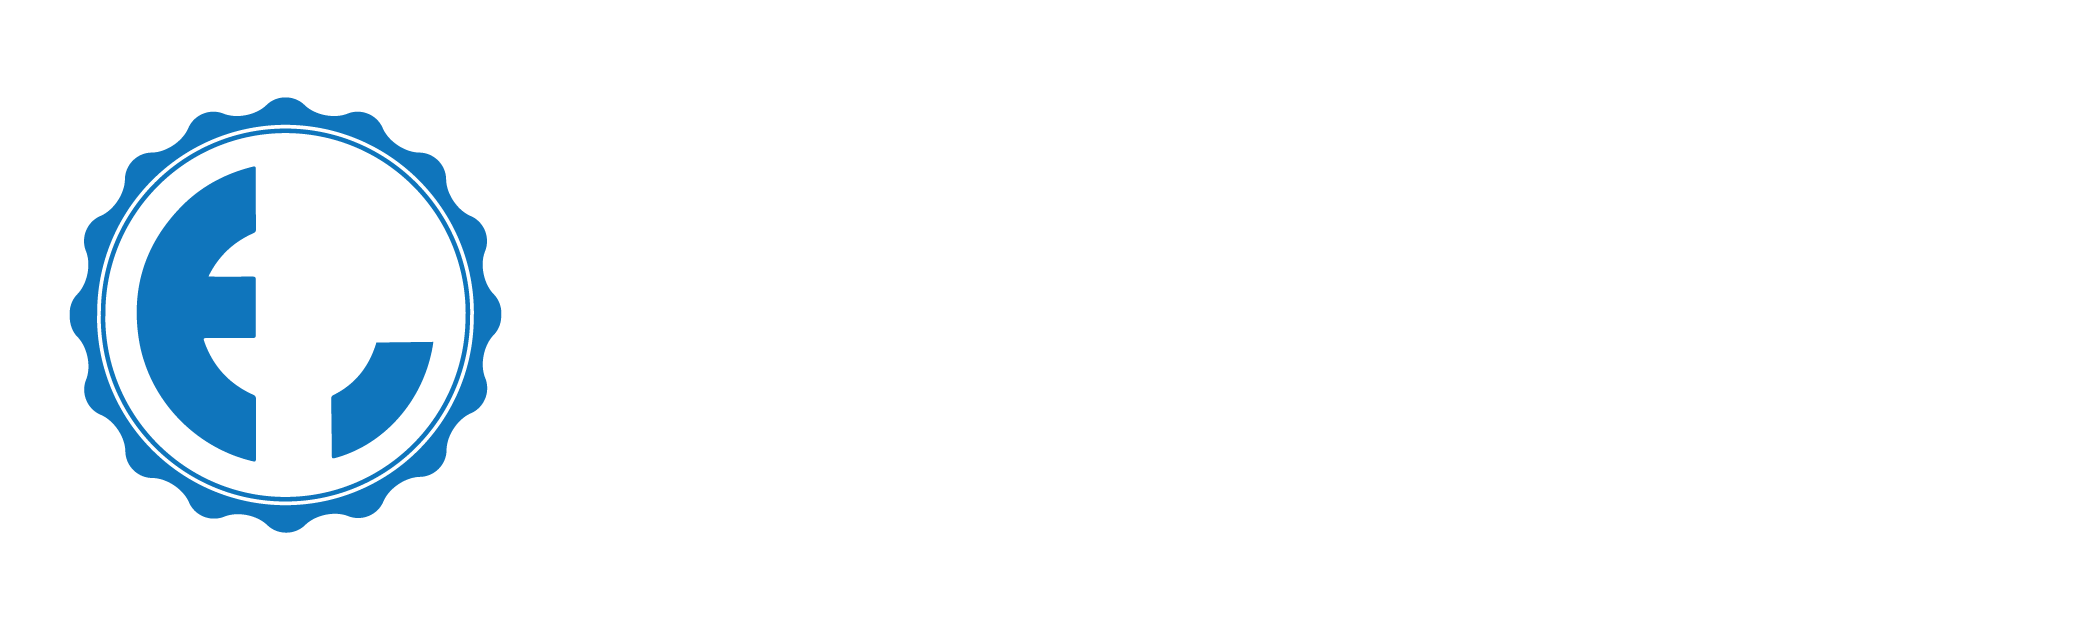 Evolution Performance